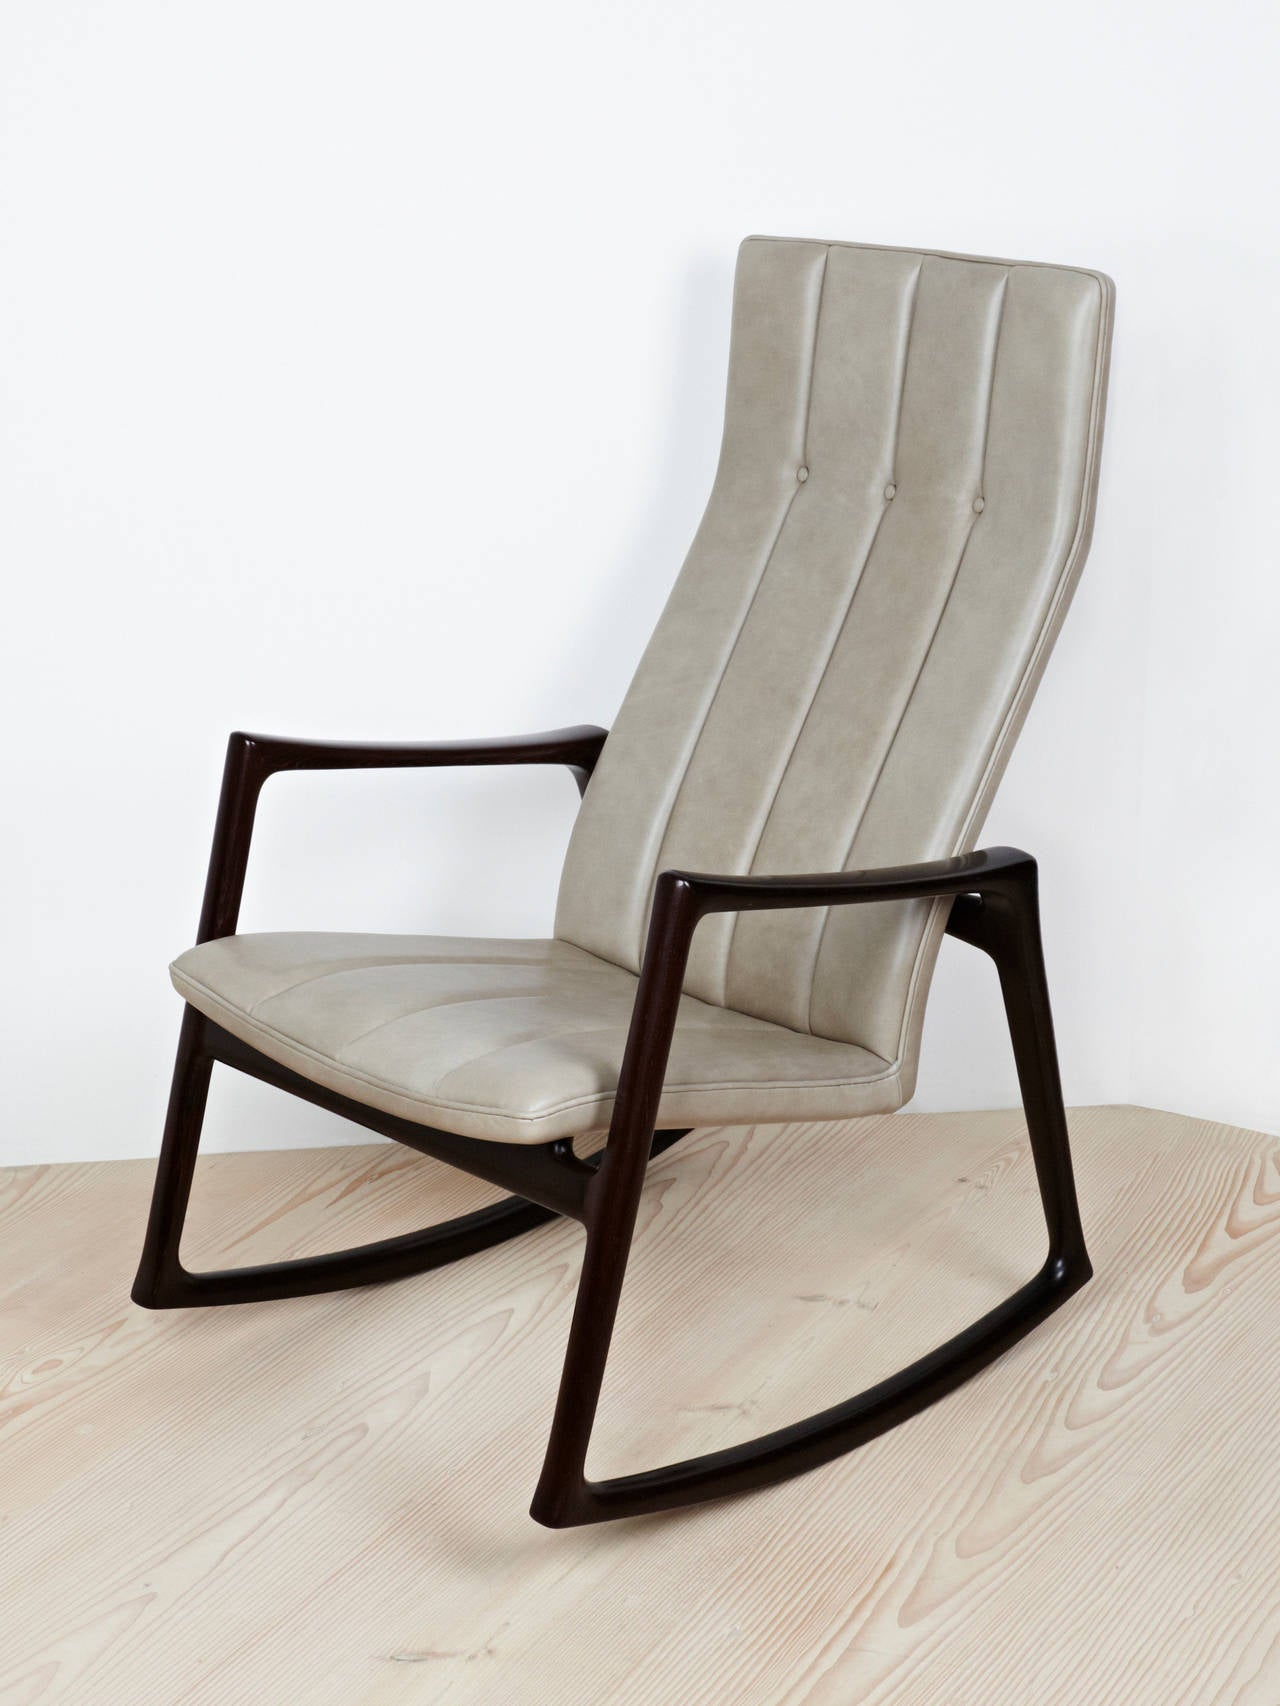 Helge Vestergaard Jensen Rocking Chair For Sale at 1stdibs